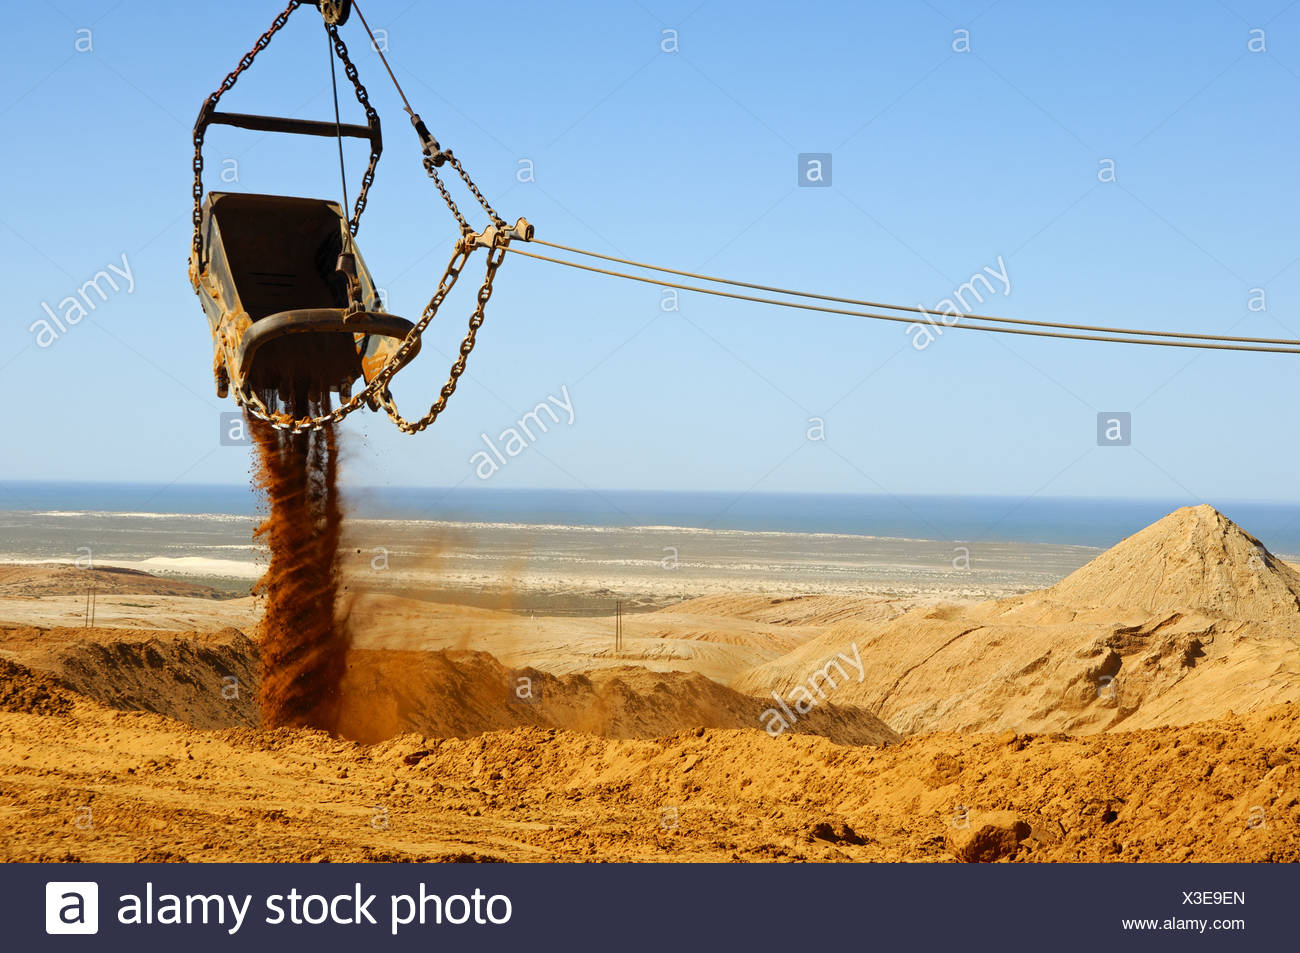 Bucket of a dragline excavator dumping earth - Stock Image